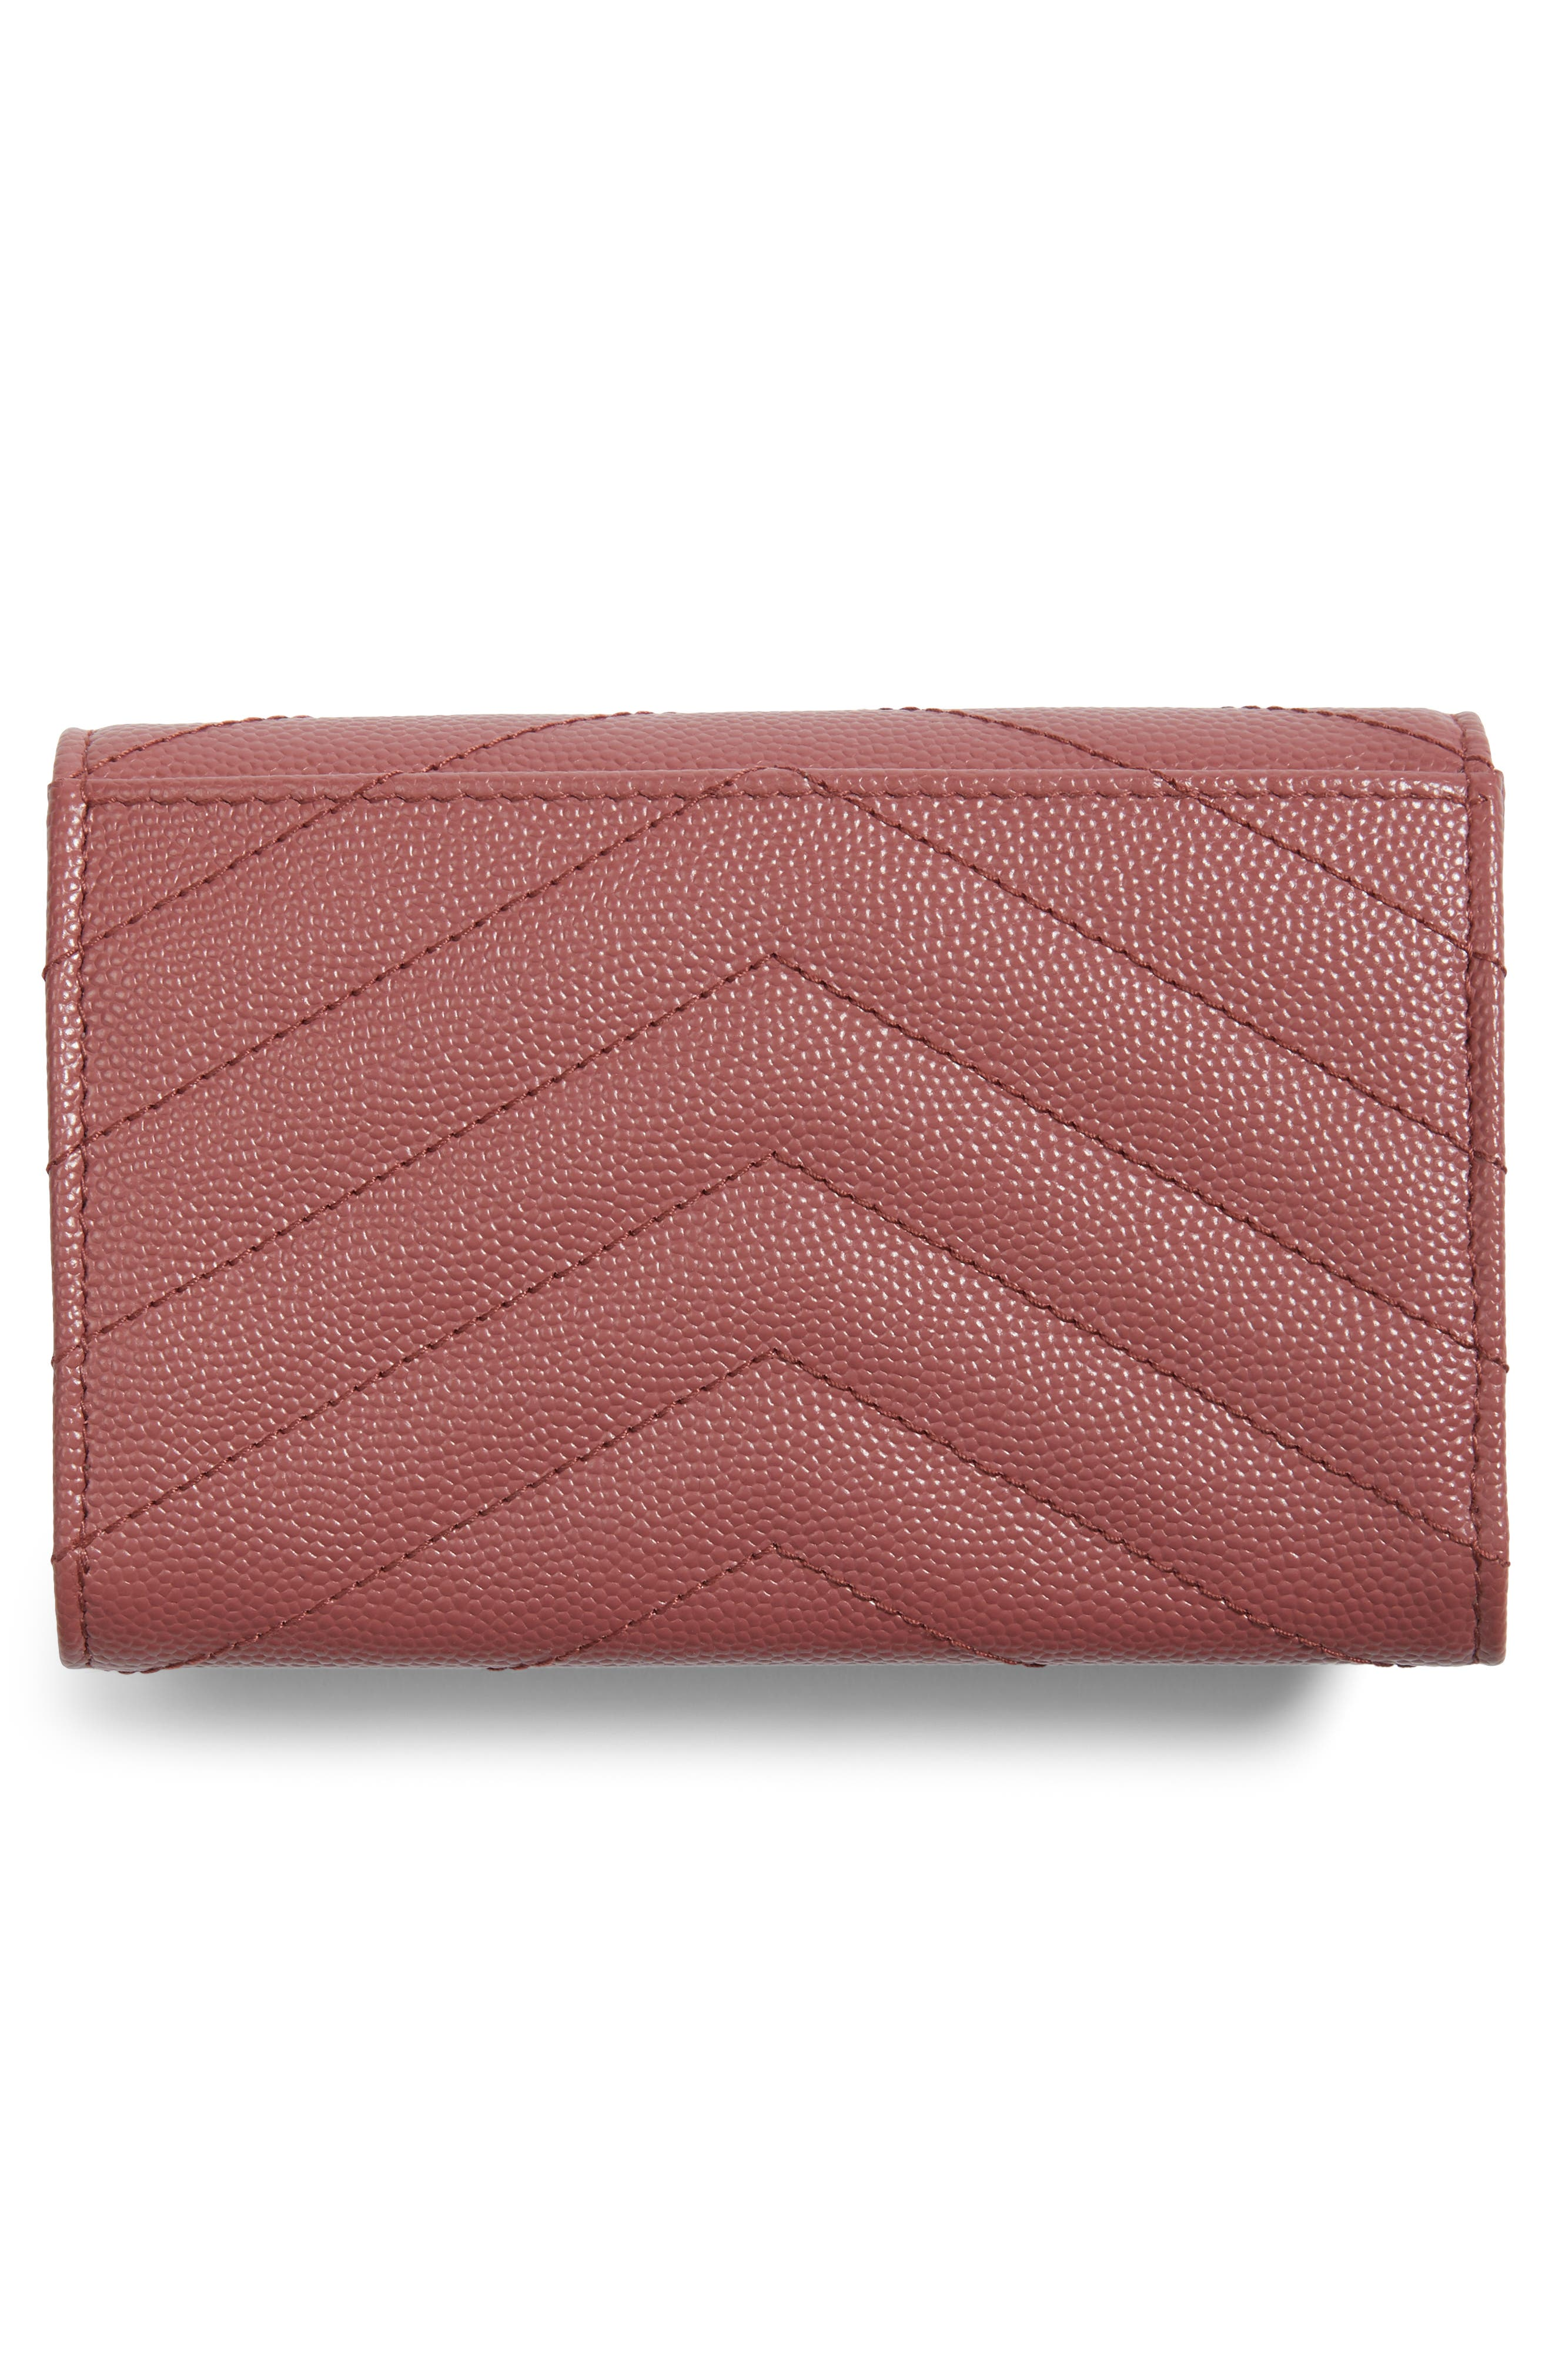 'Small Monogram' Leather French Wallet,                             Alternate thumbnail 25, color,